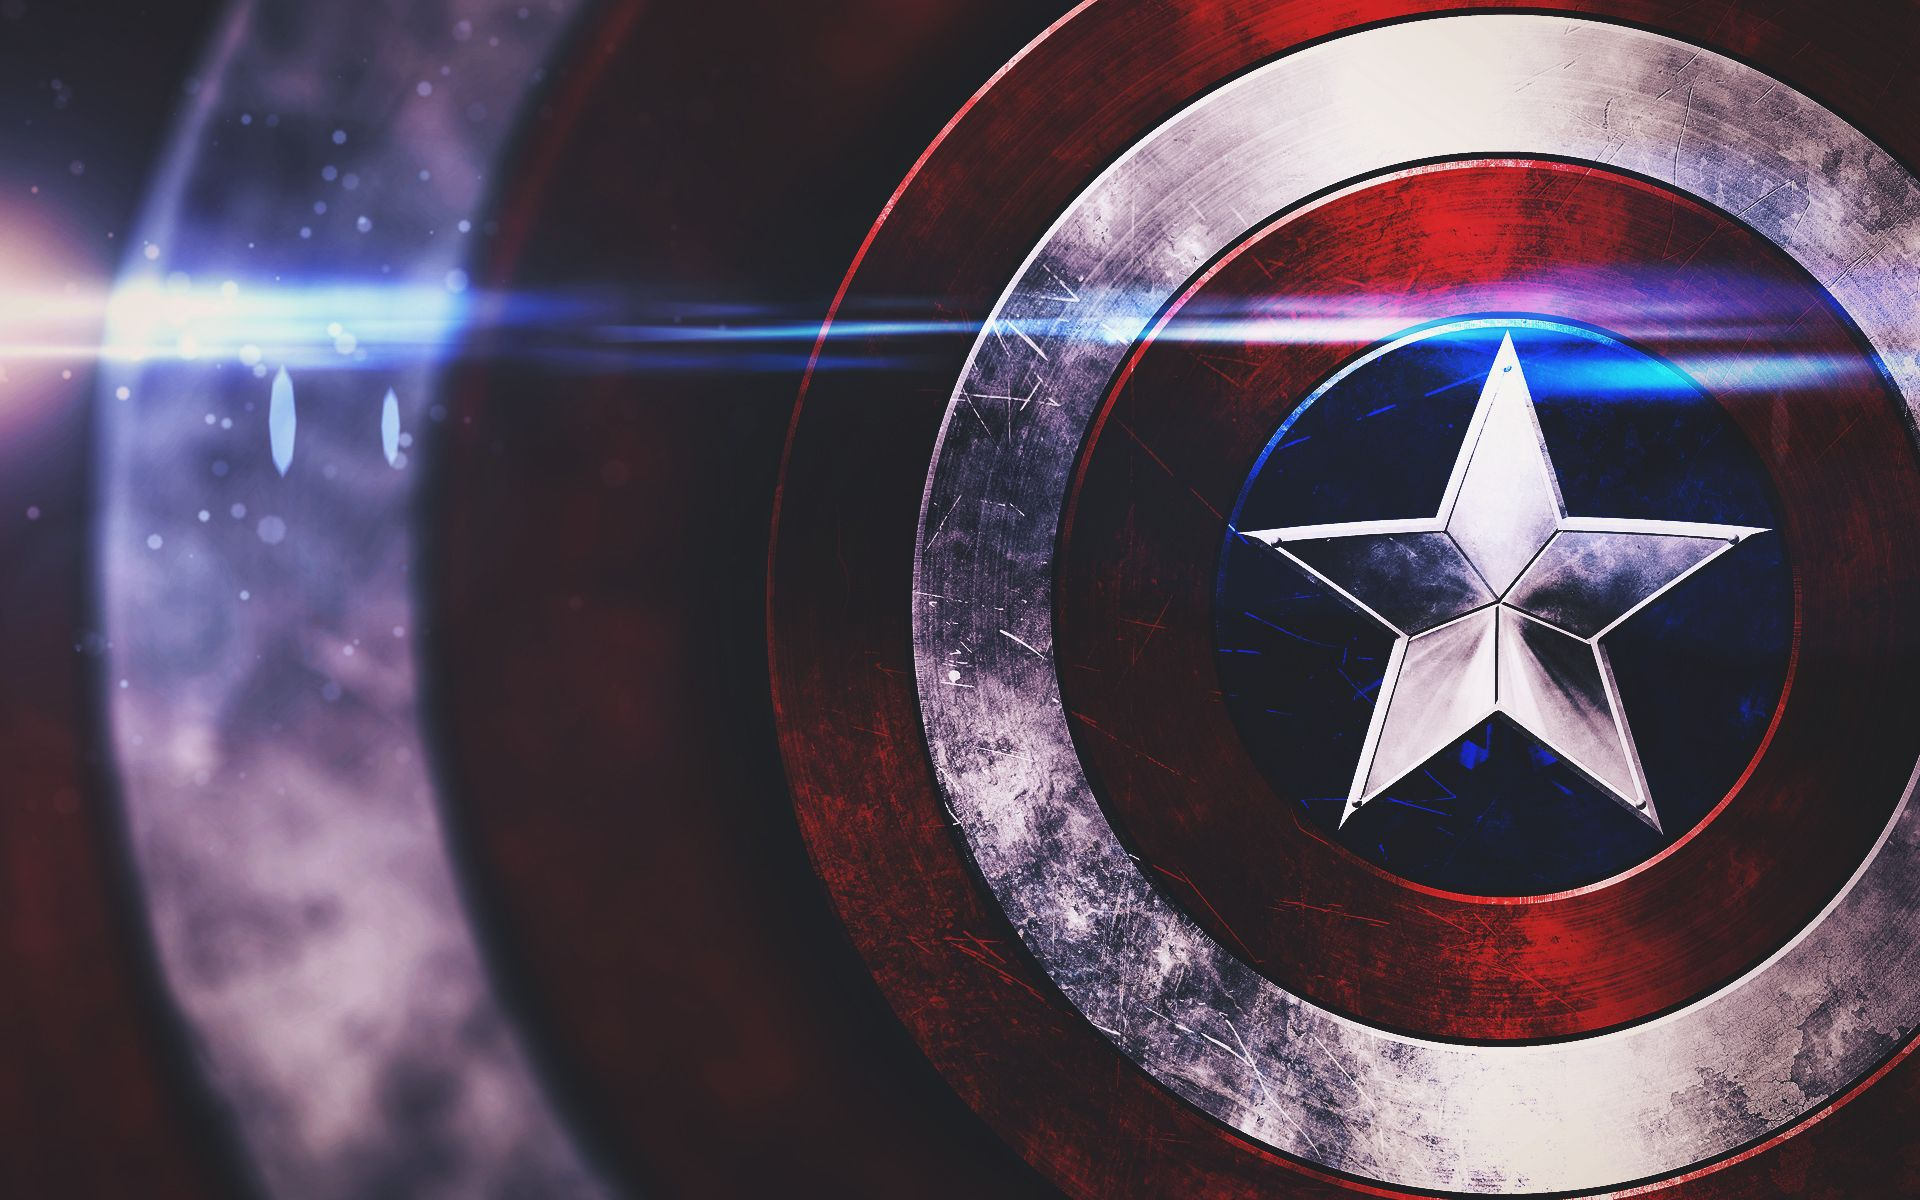 captain america wedding band Captain America Shield Wallpaper High Quality Resolution with HD Wallpaper Resolution px 1 71 MB